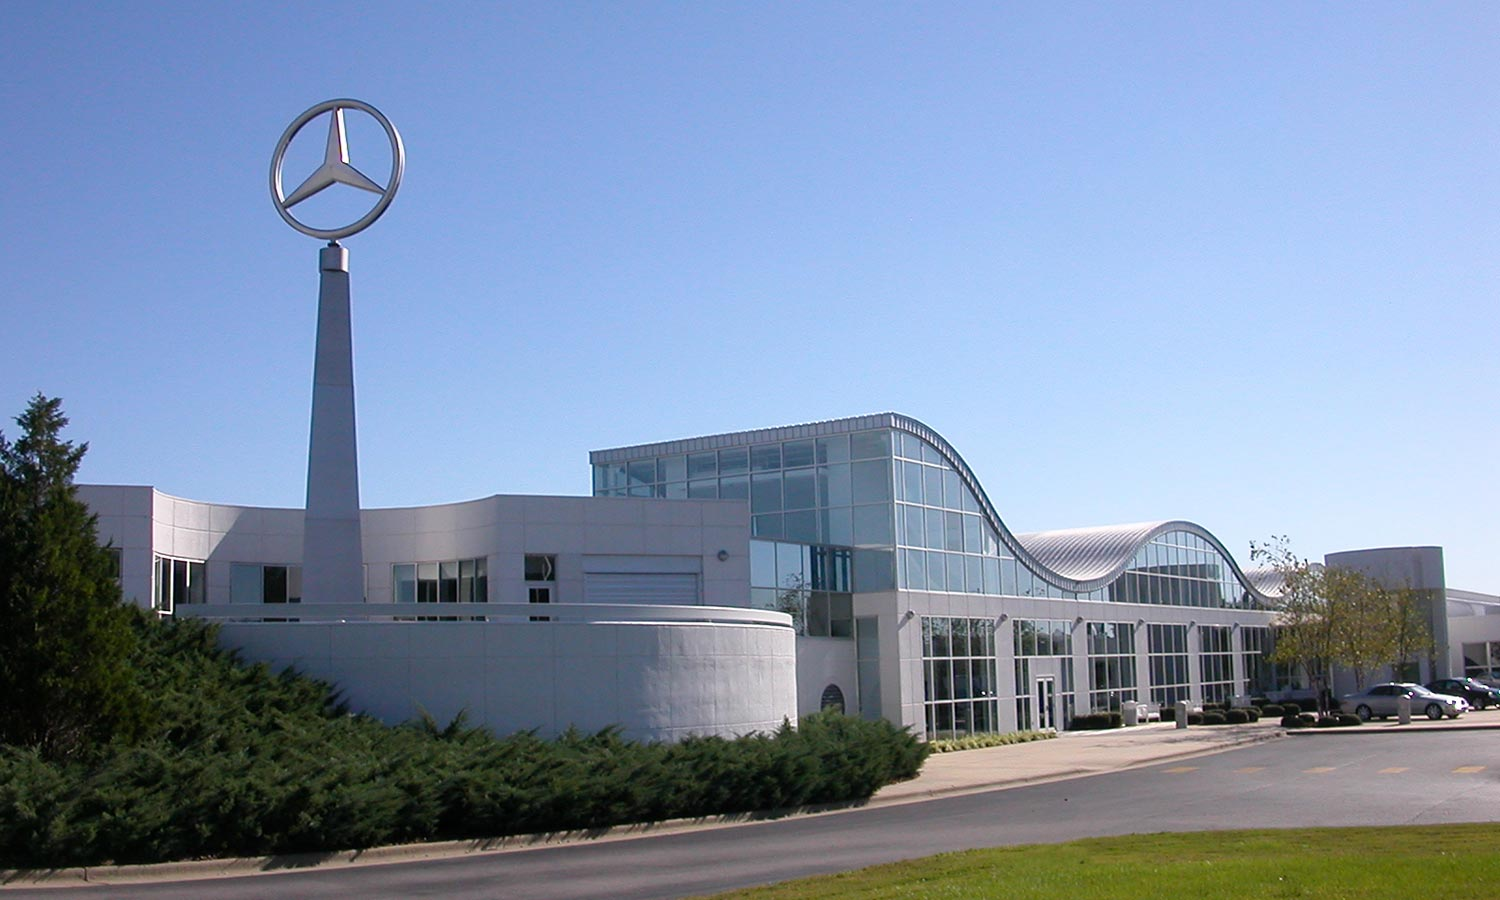 Mercedes benz customer service center lbyd engineers for Mercedes benz customer service email address